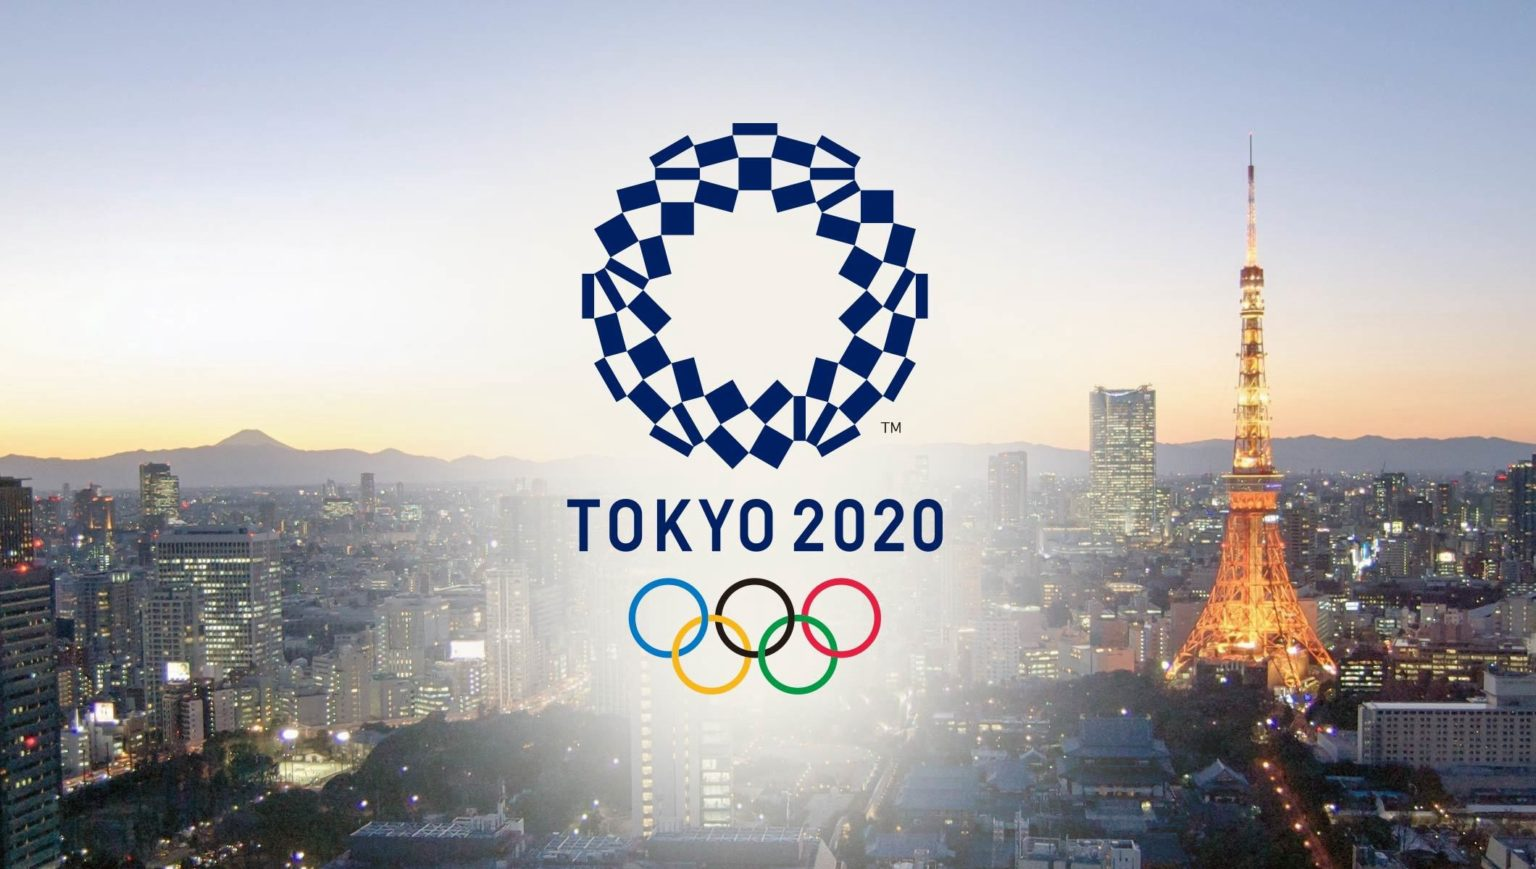 Meet some of the Brothers and Sisters representing at The Tokyo 2020 Olympics